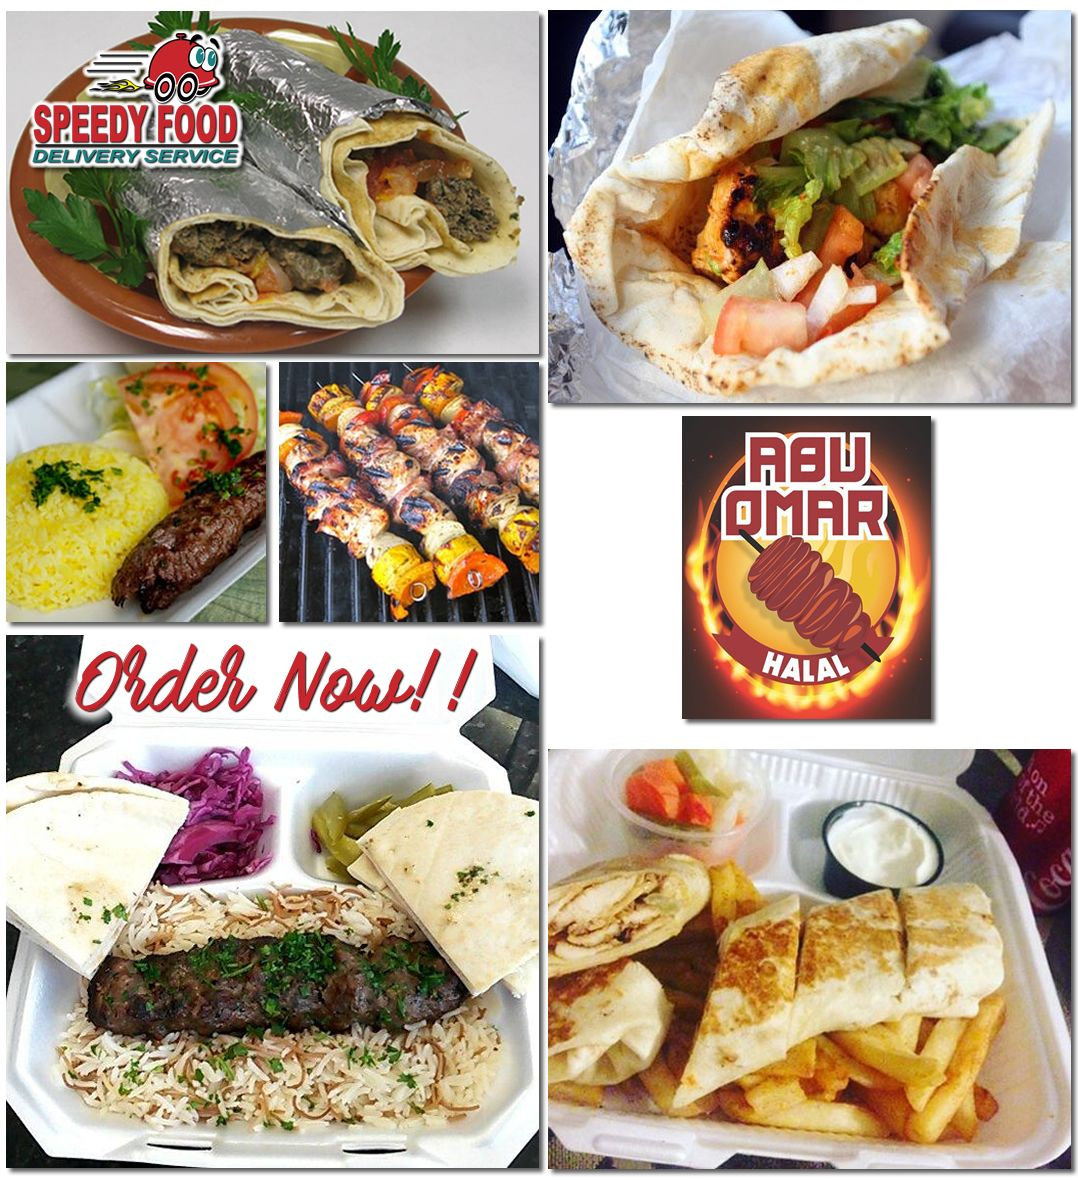 Abu Omar Halal Is A Halal Food Truck That Specializes In Arab Food Their Menu Ranges From Shawarmas Kabobs Falafel And Gyro Sand Food Food Net Halal Recipes